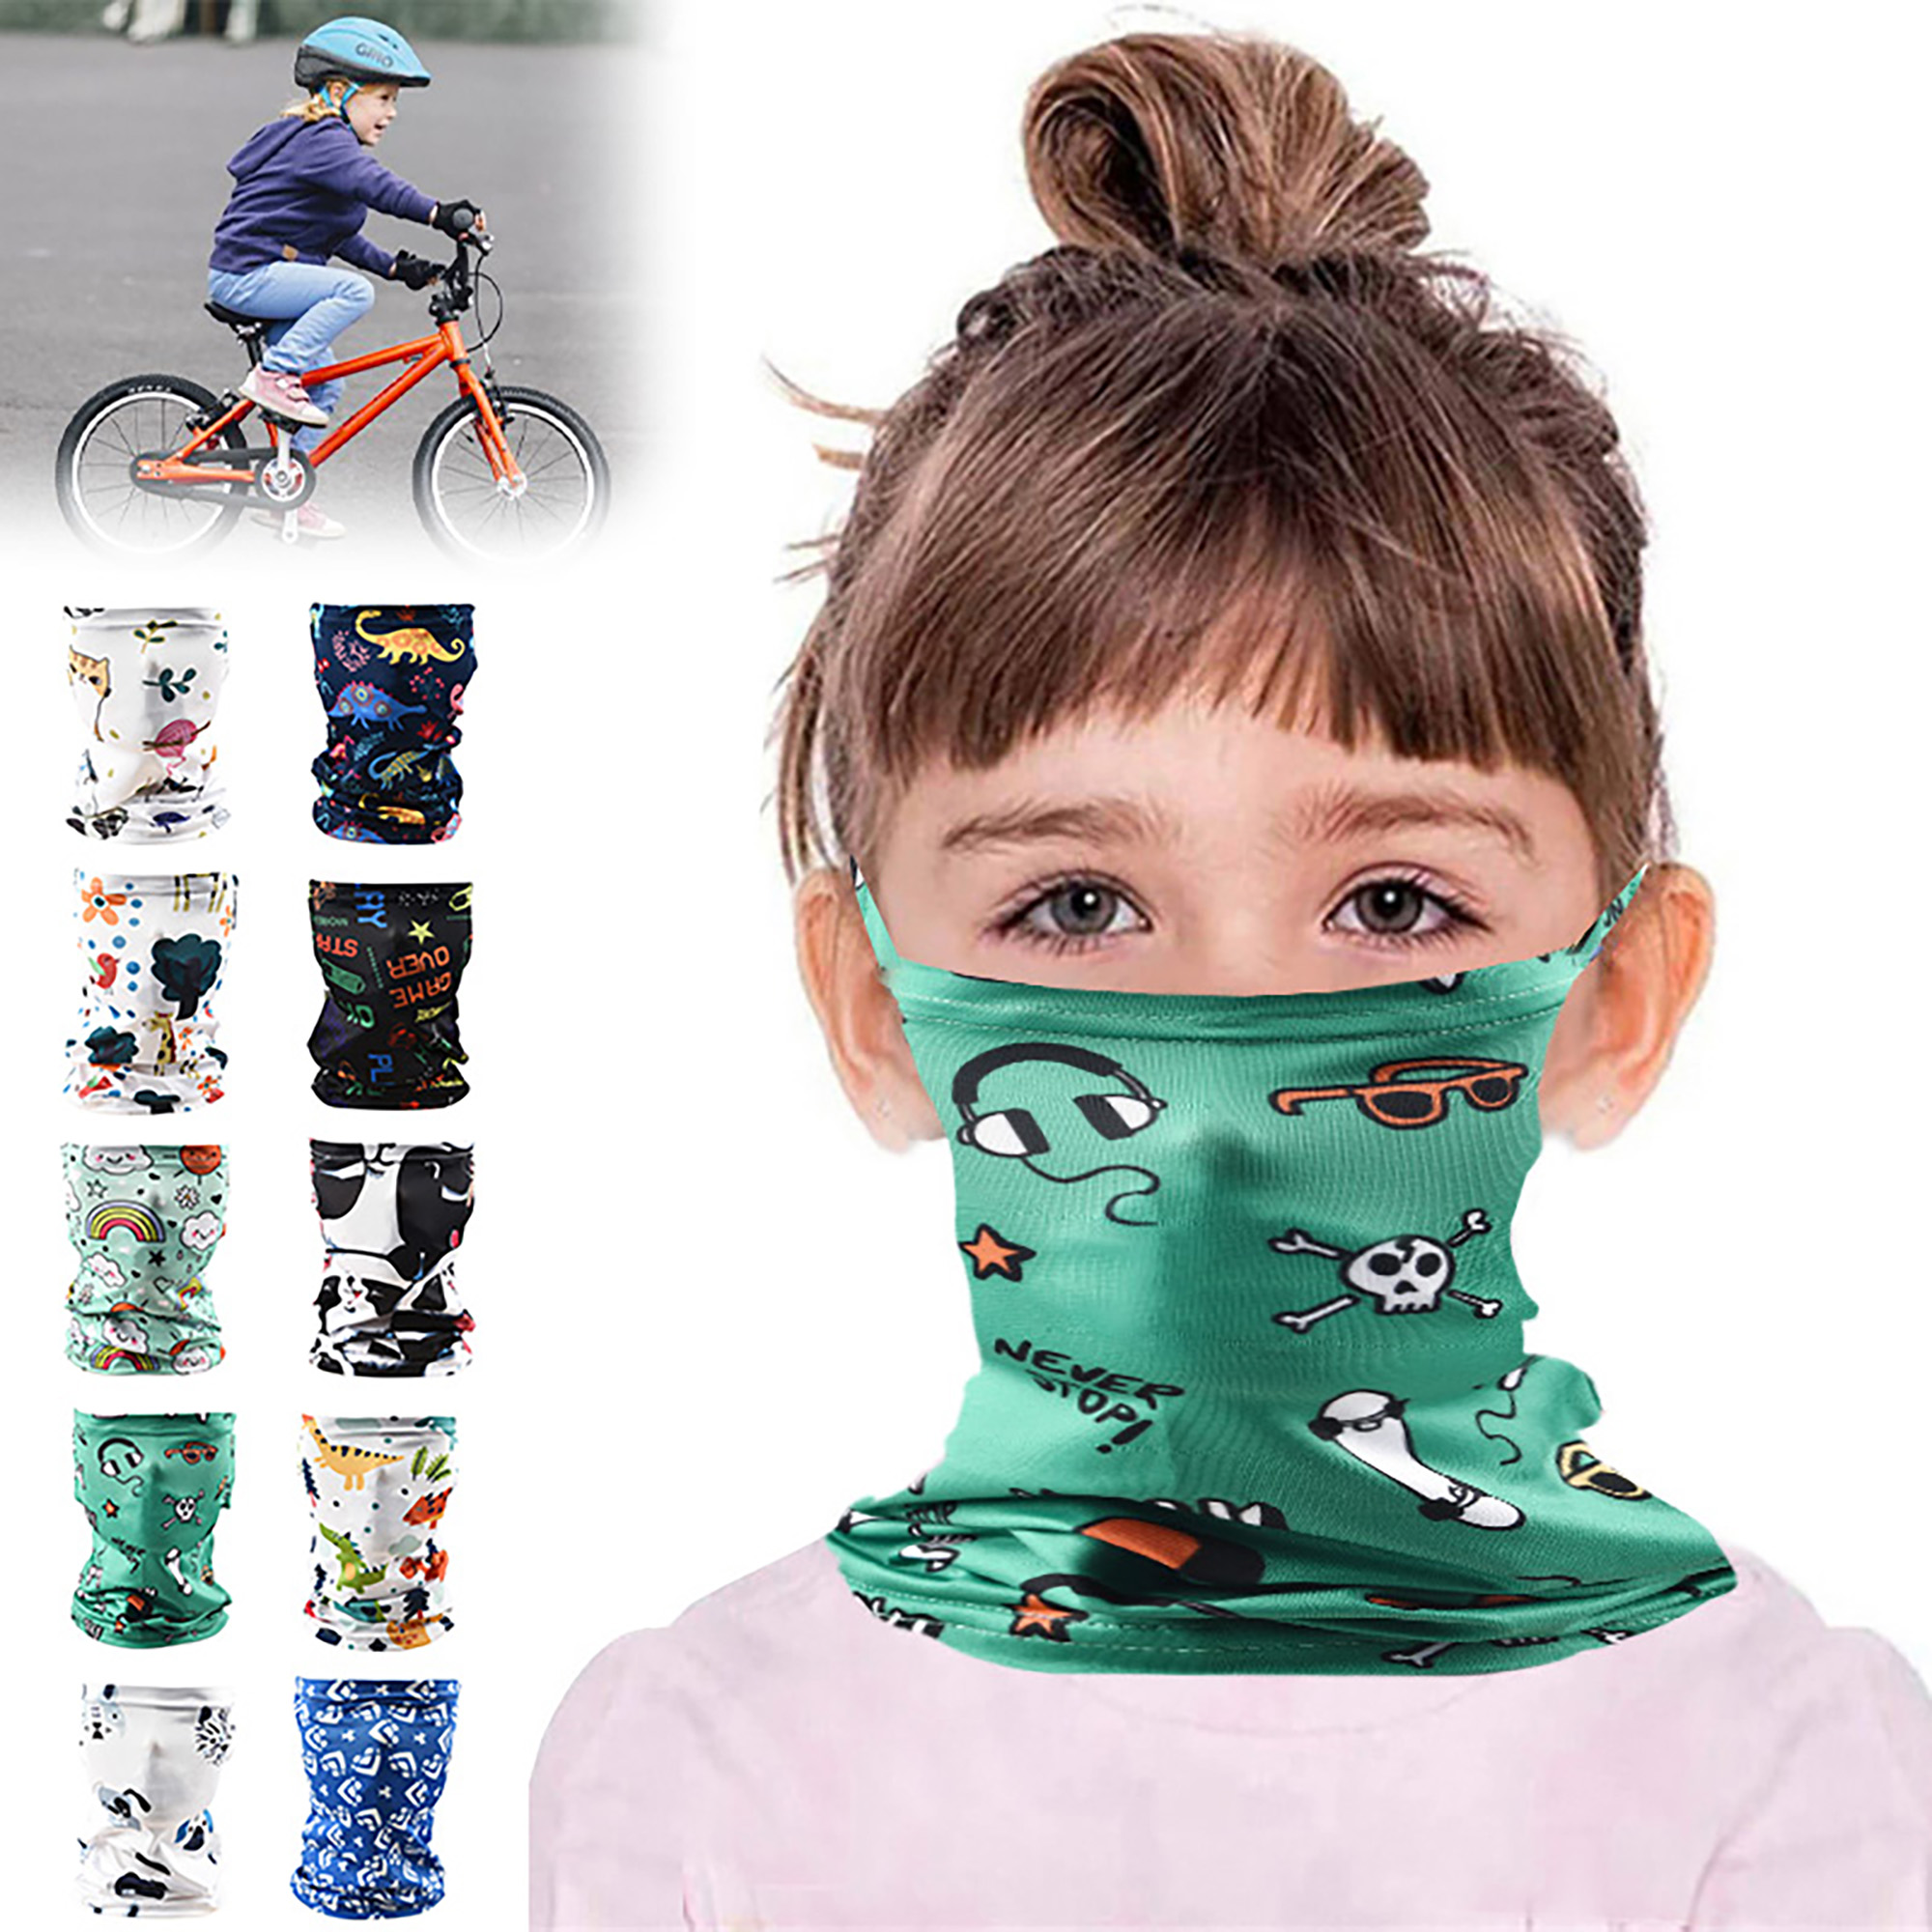 9 Pieces Kids Neck Gaiter Children Face Bandanas UV Sun Protection Face Cover Scarf Headband Balaclavas for Cycling Sports Outdoor